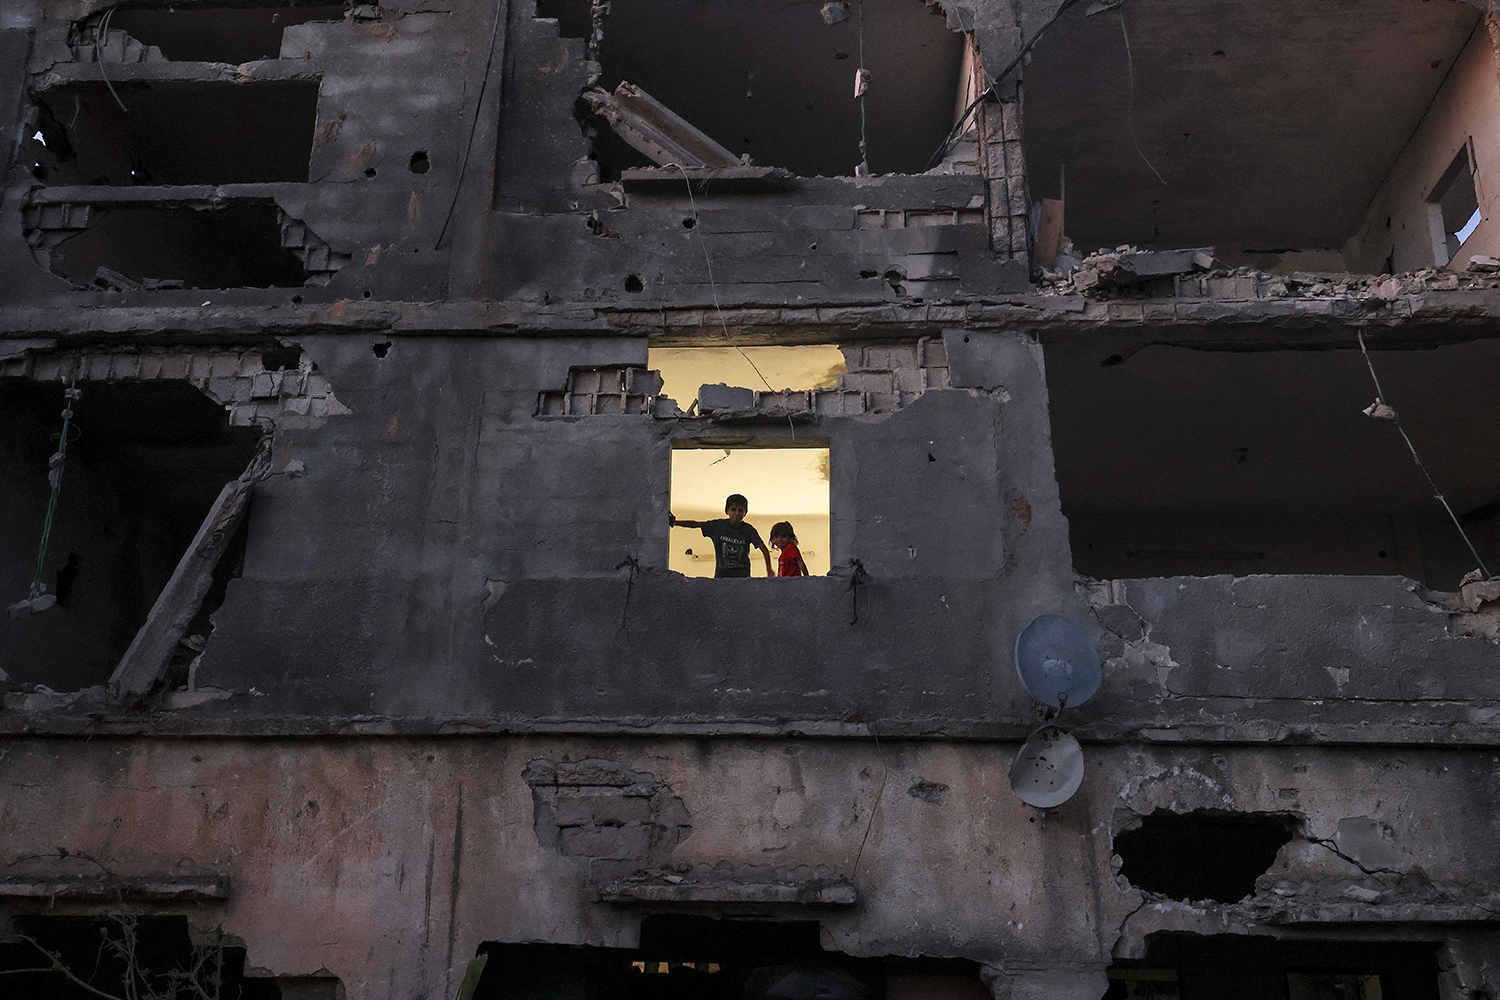 Palestinian children stand at the window of their damaged home.